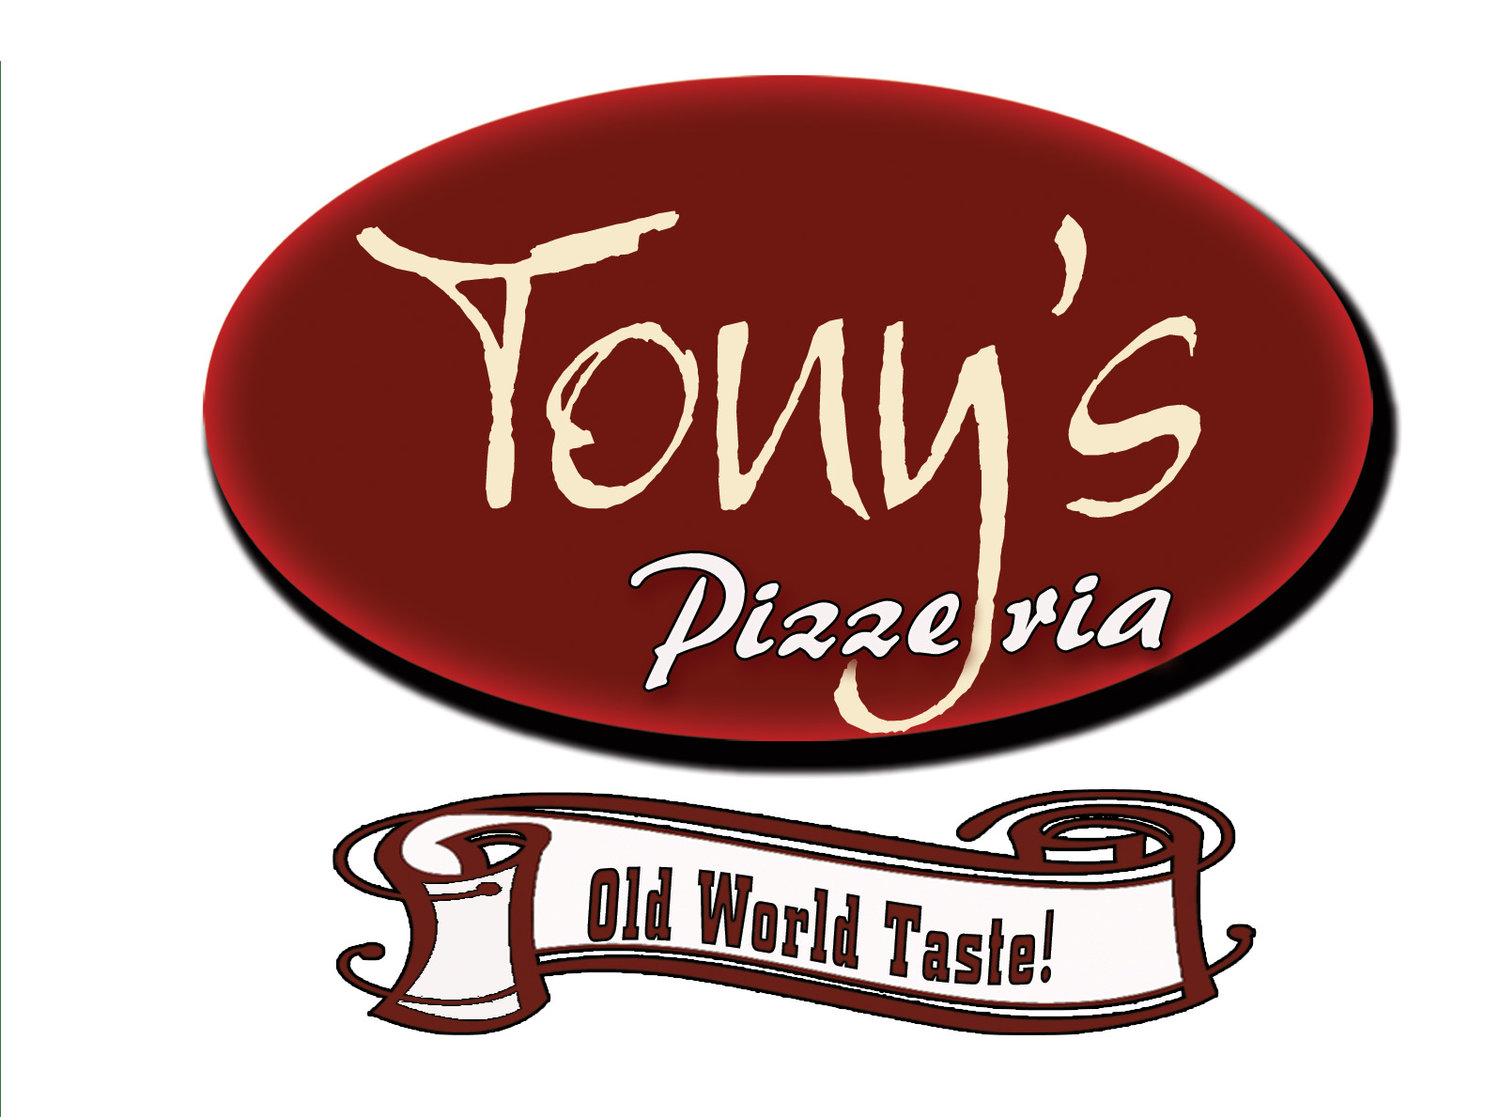 Tony's Pizza & Pasta